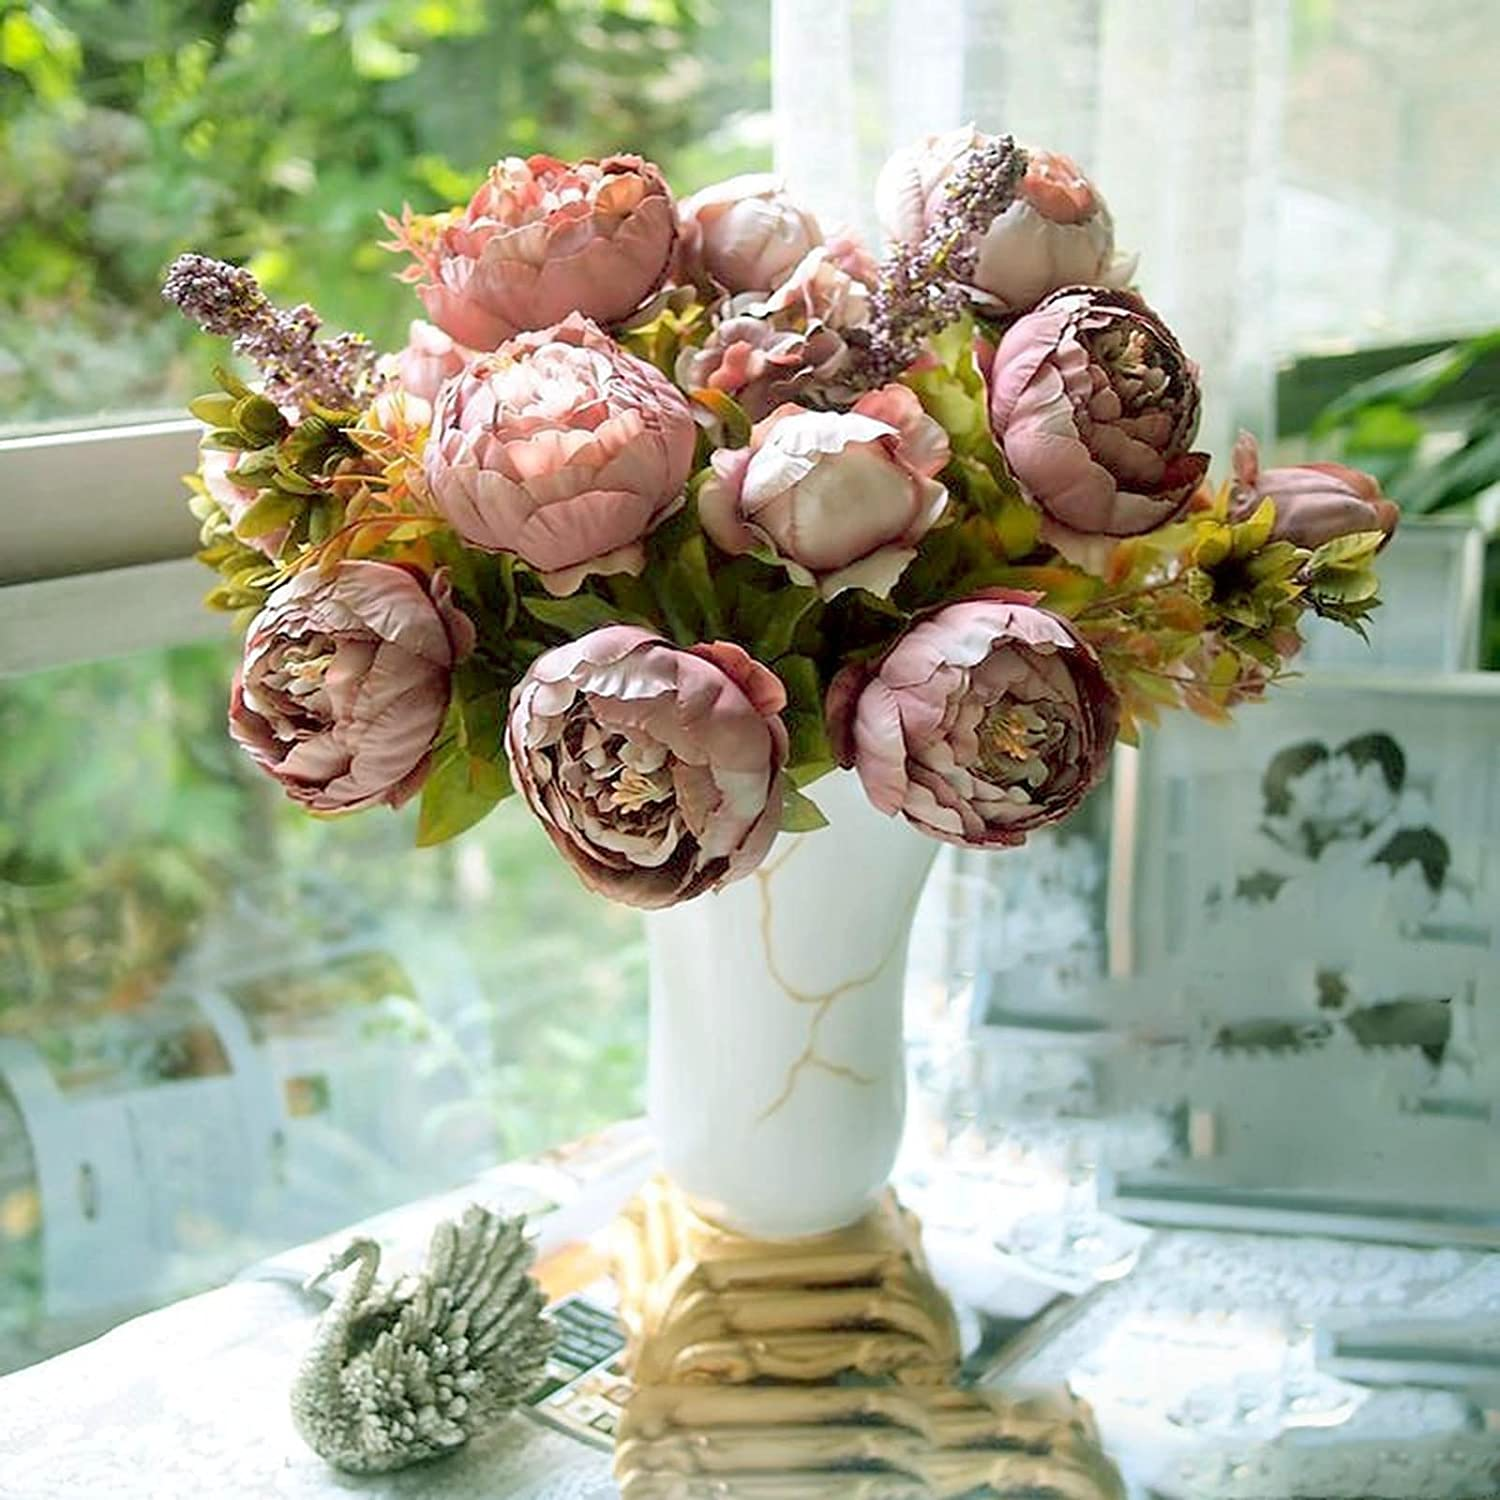 Huntgold 1x artificial peony silk flowers bouquet for wedding huntgold 1x artificial peony silk flowers bouquet for wedding party bouquet decorationcameo amazon computers accessories dhlflorist Images